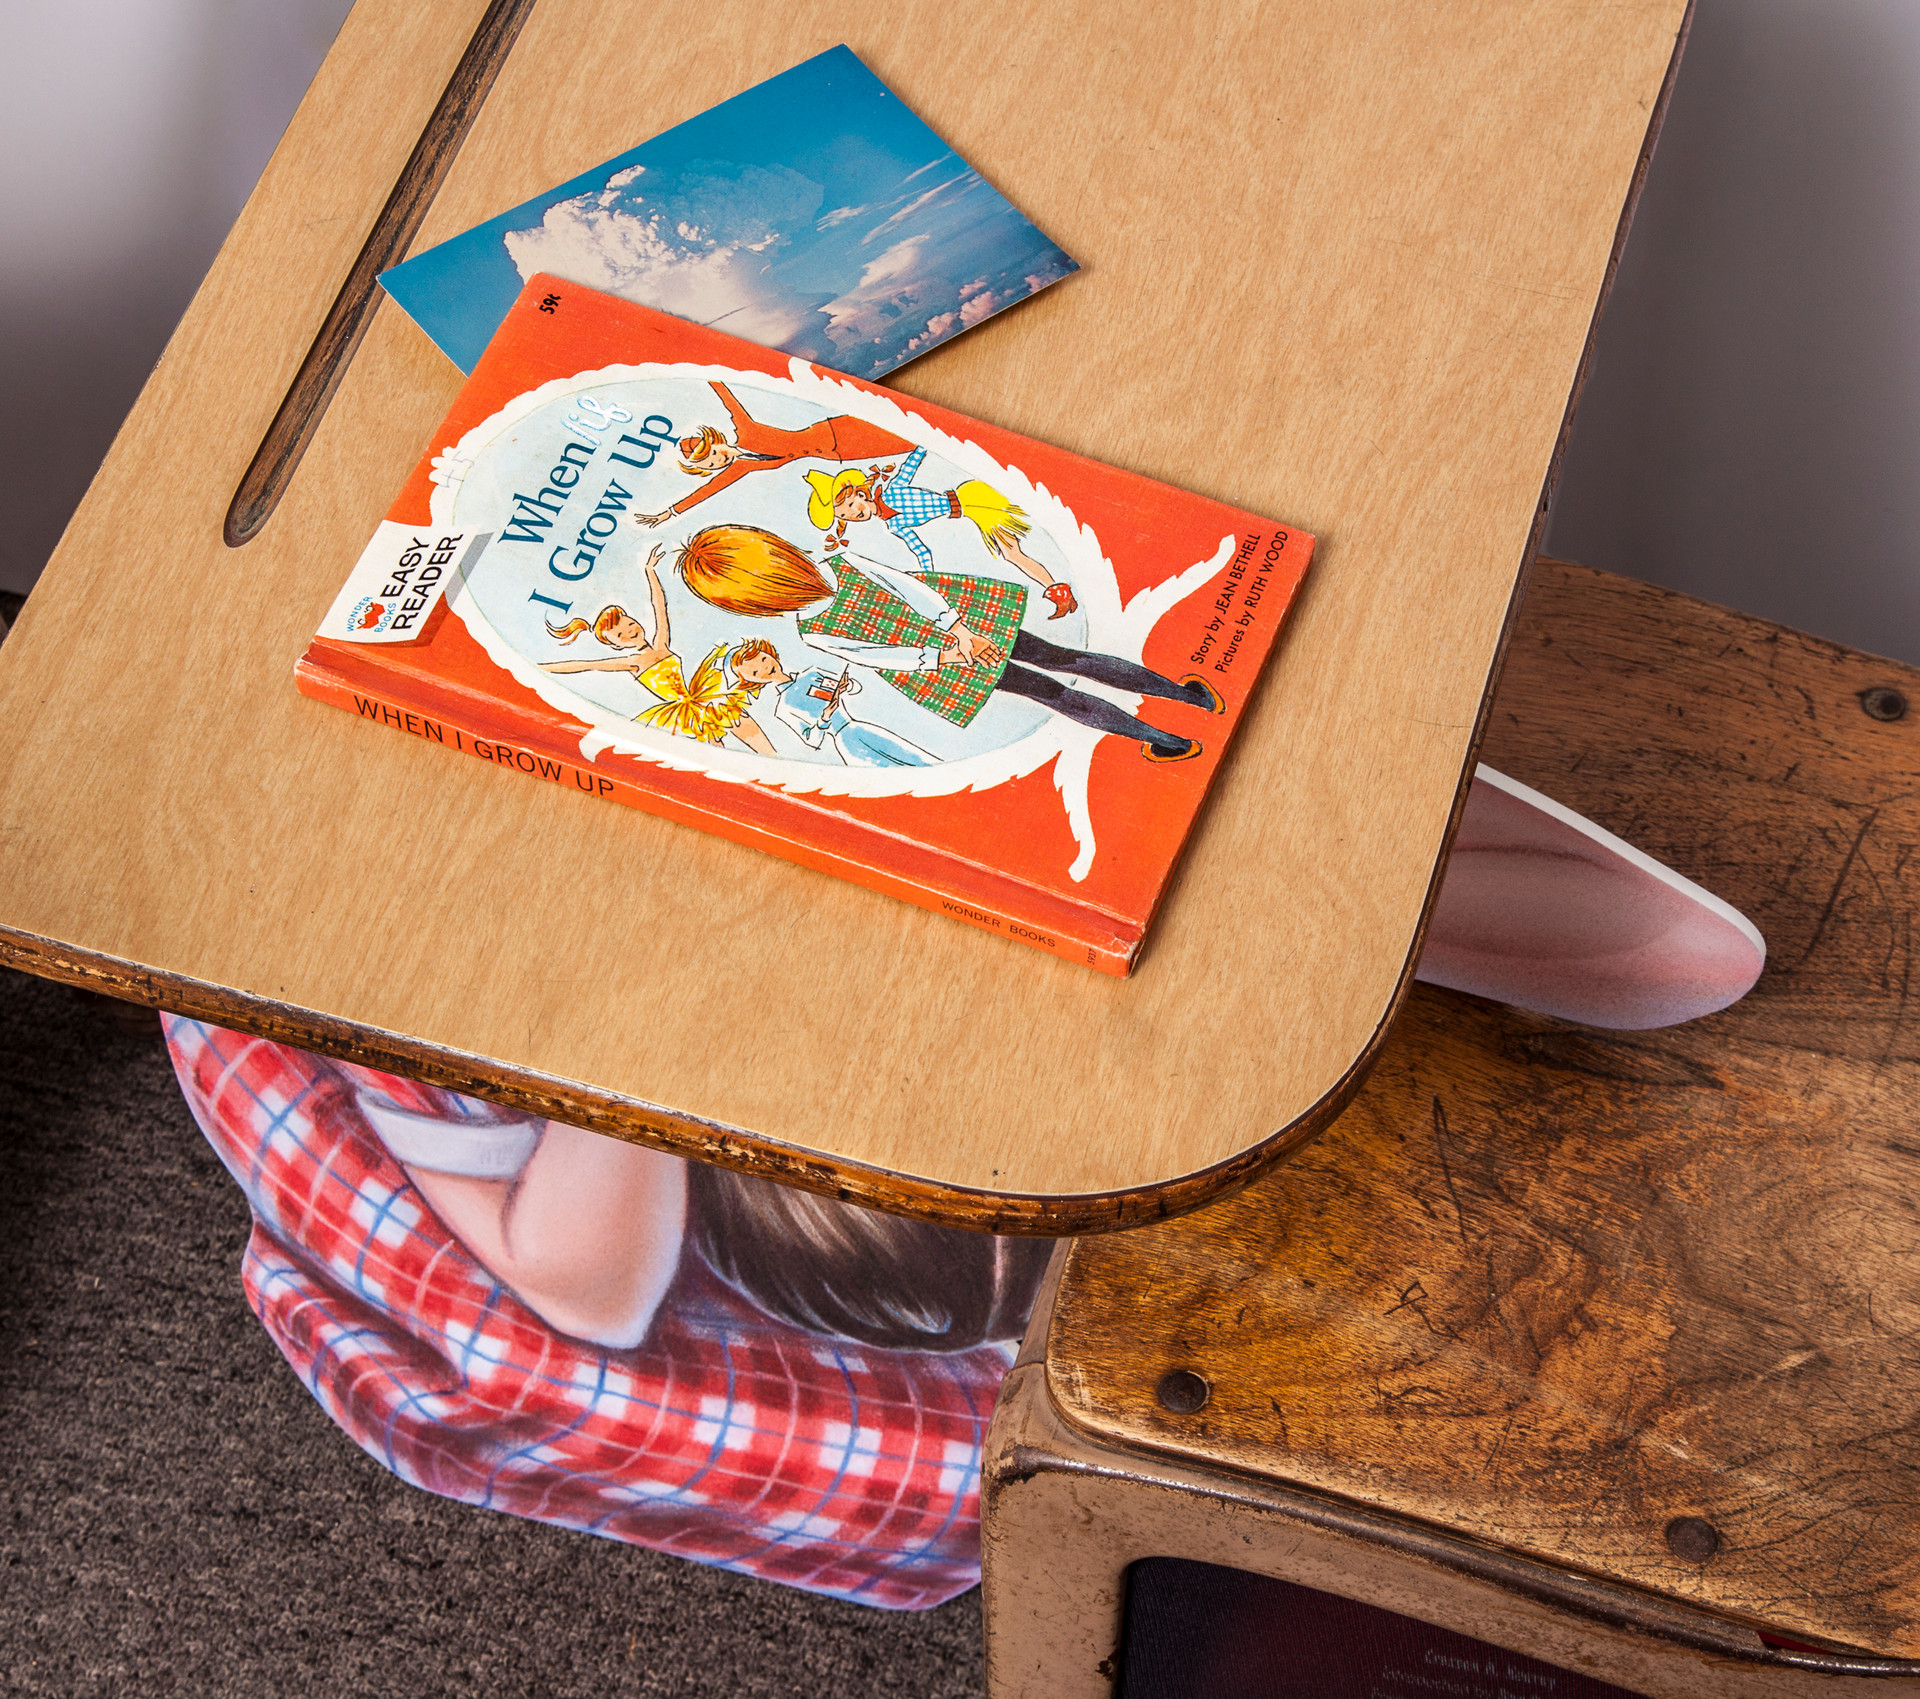 (desk top) When [if] I Grow Up, Jean Bothell, 1965; bookmark is vintage color postcard of Atomic Explosion, circa 1950.